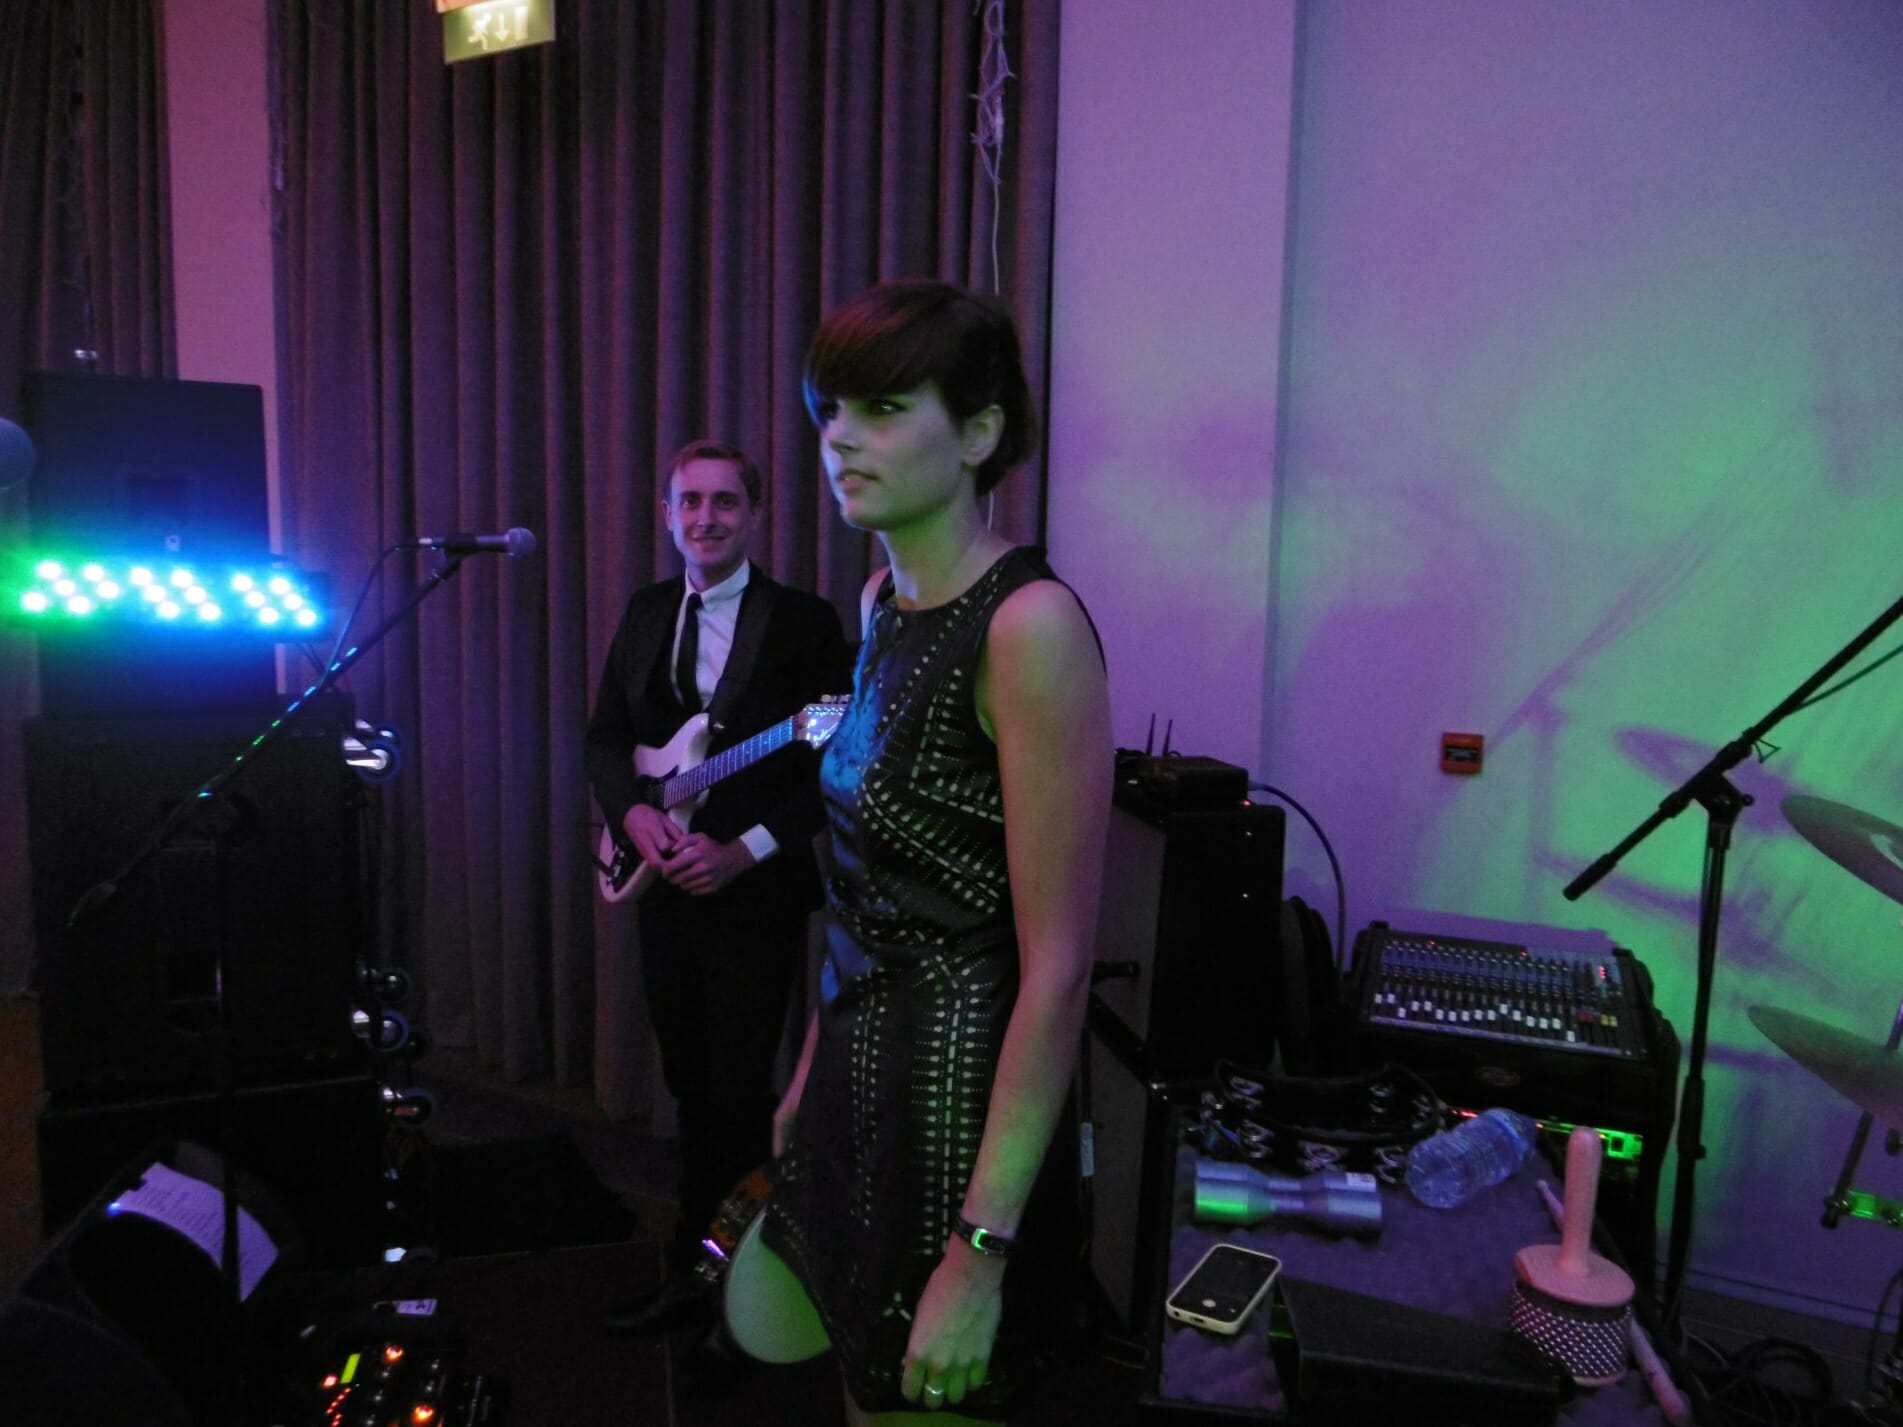 Wedding band in Wiltshire. Band at Bowood House, band playing at Bowood, Band in Berkshire, 1960s show, Sisties band, Sixites show, 60s theatre show, Hire a 60s band, Wedding band in South West, Wedding band in Rockley